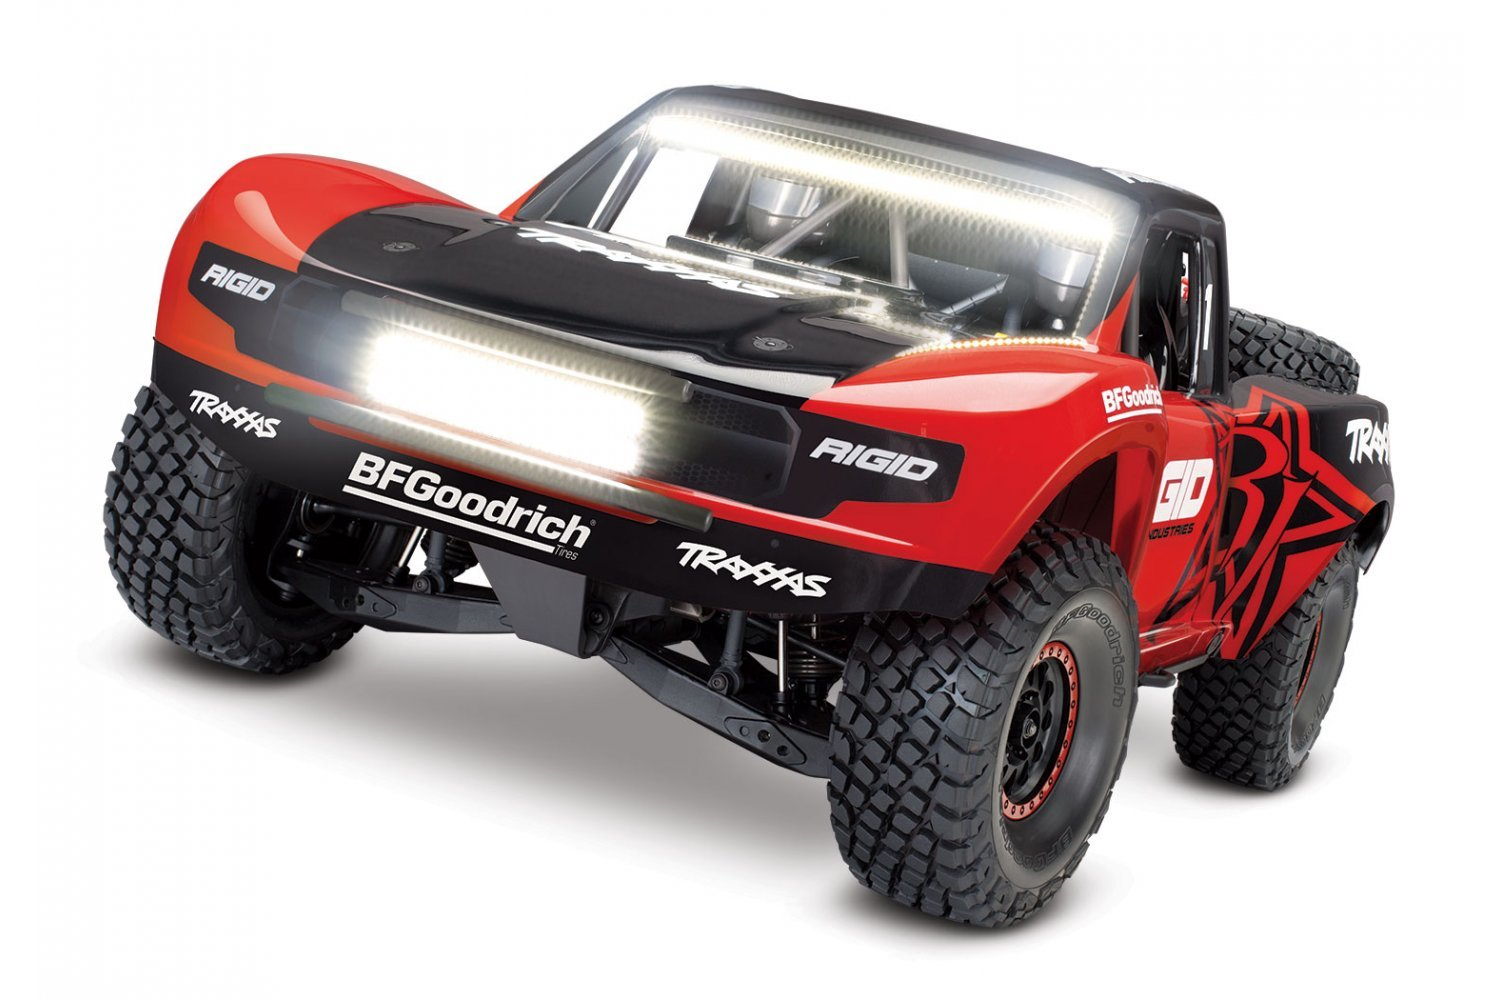 Traxxas 1/7 Unlimited Desert Racer Electric Brushless Off Road Short Course Truck w/ LED Light Kit